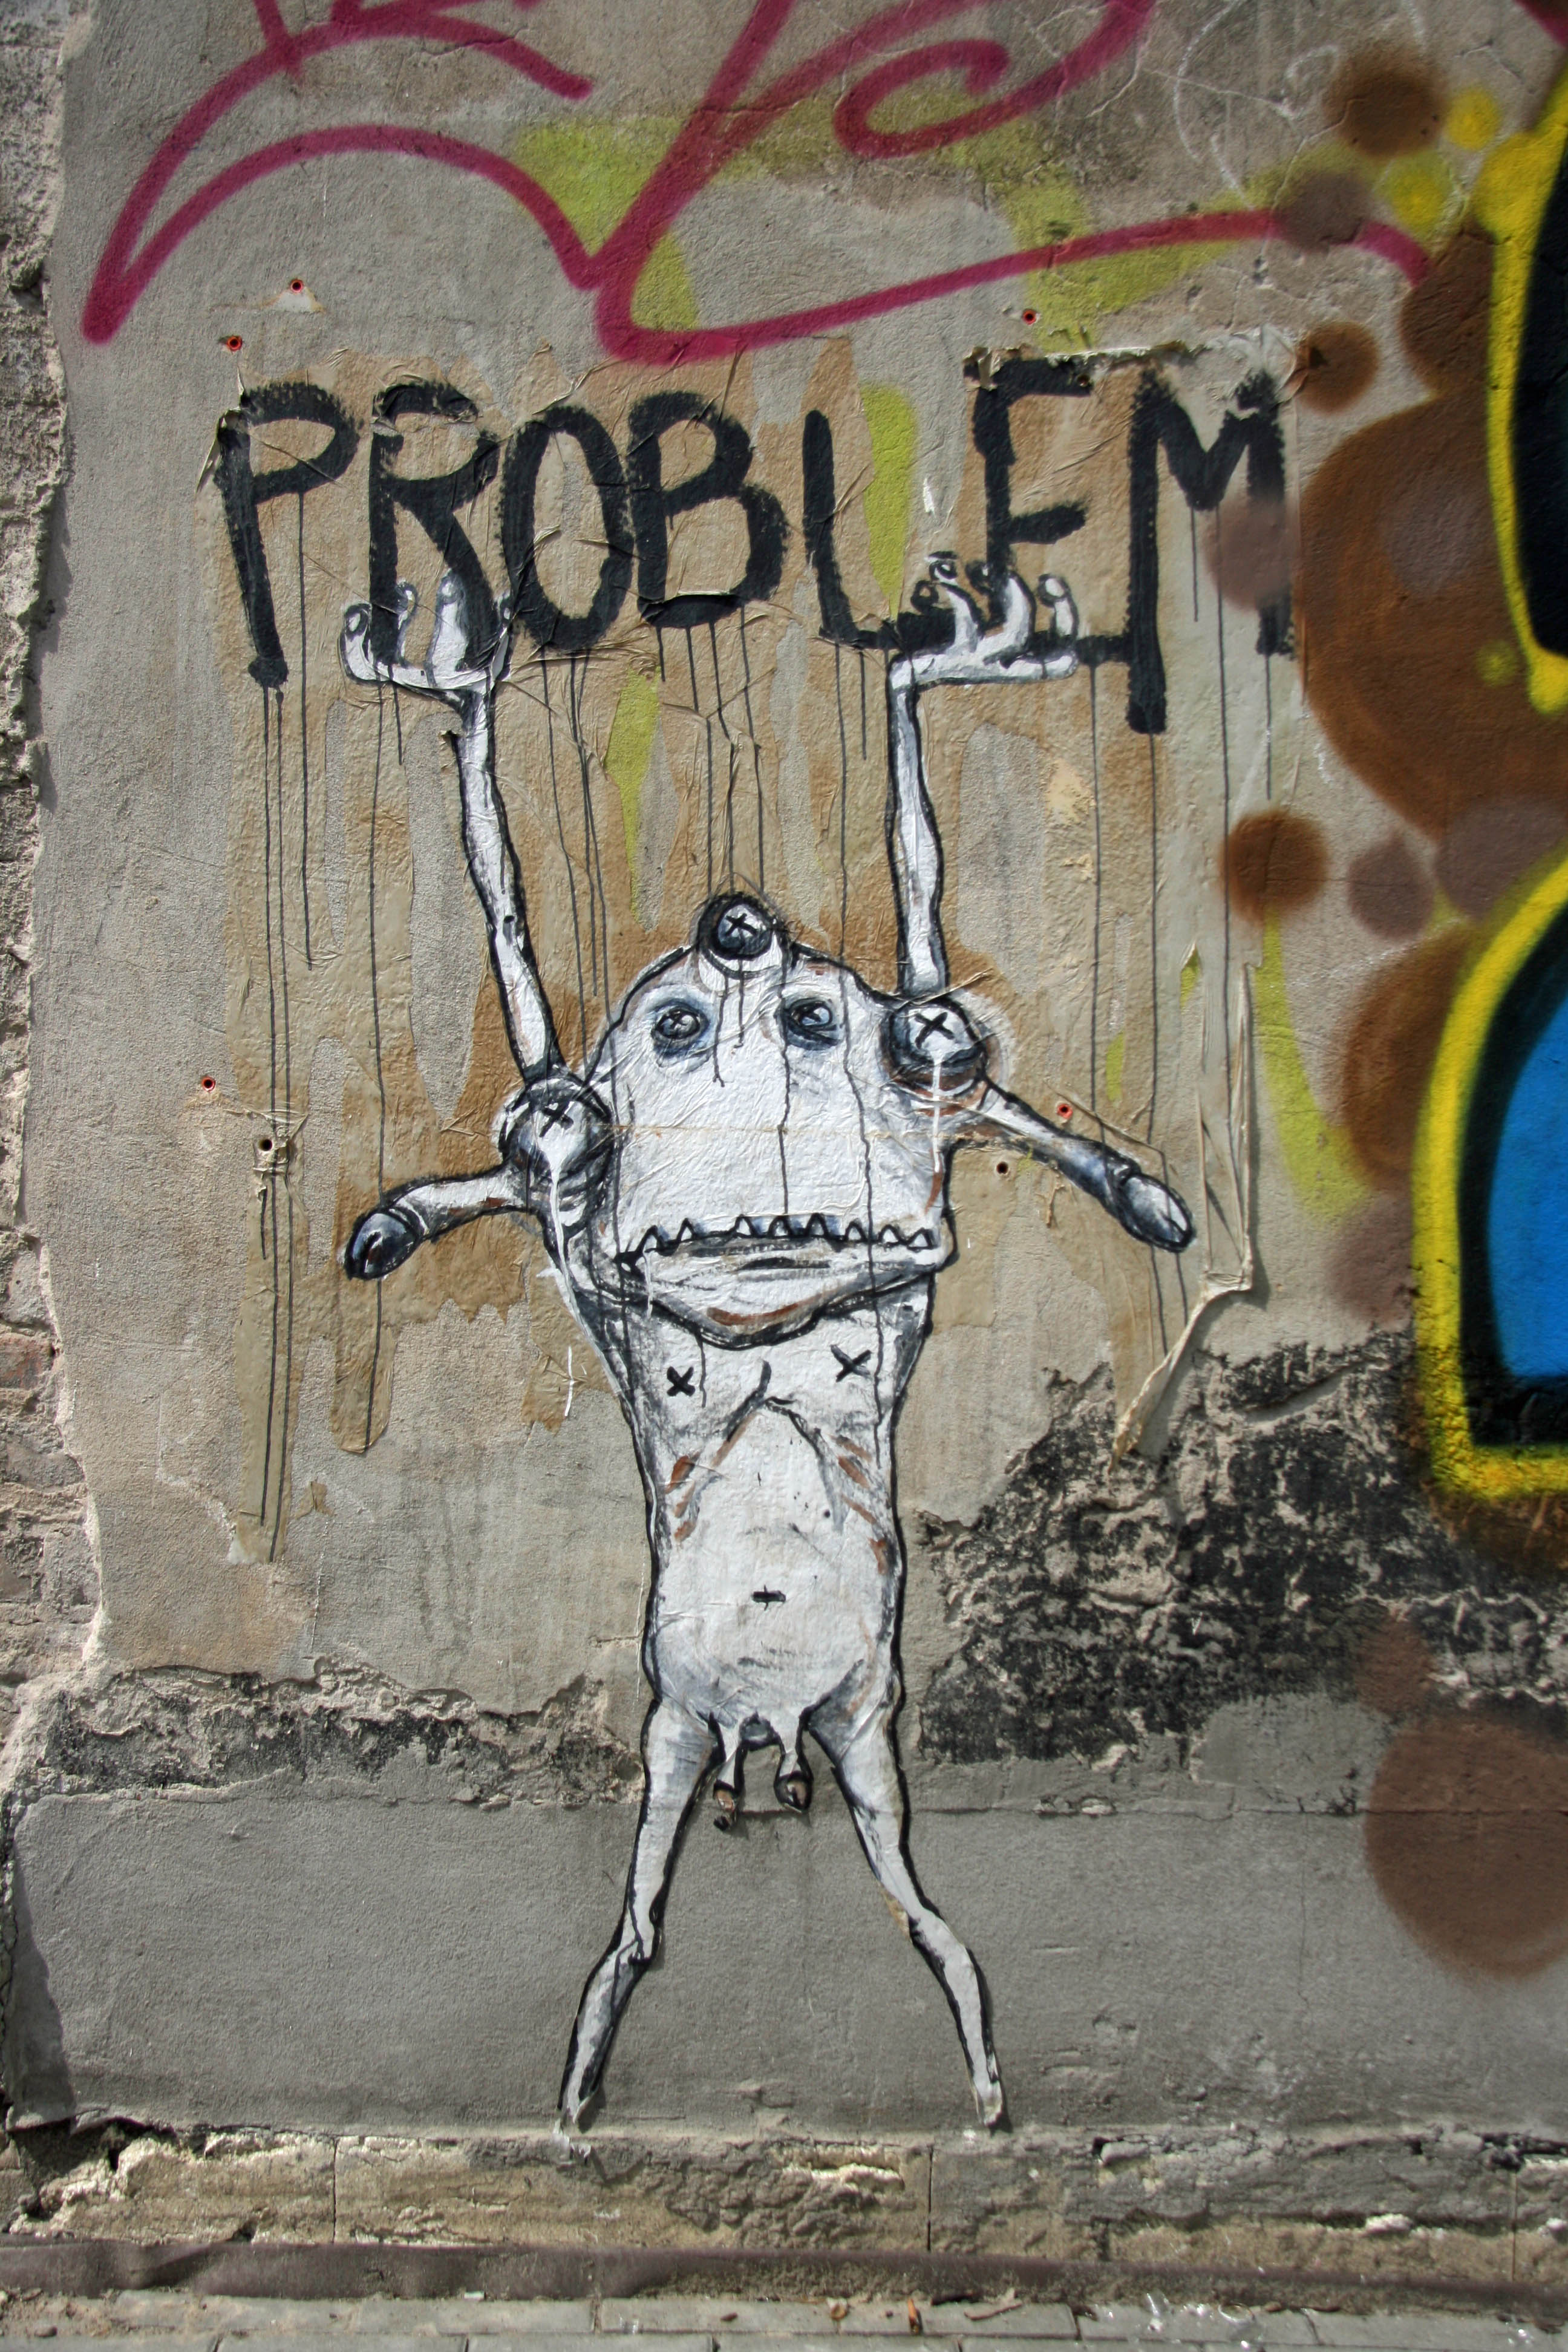 Problem: Street Art by Rallito x in Berlin